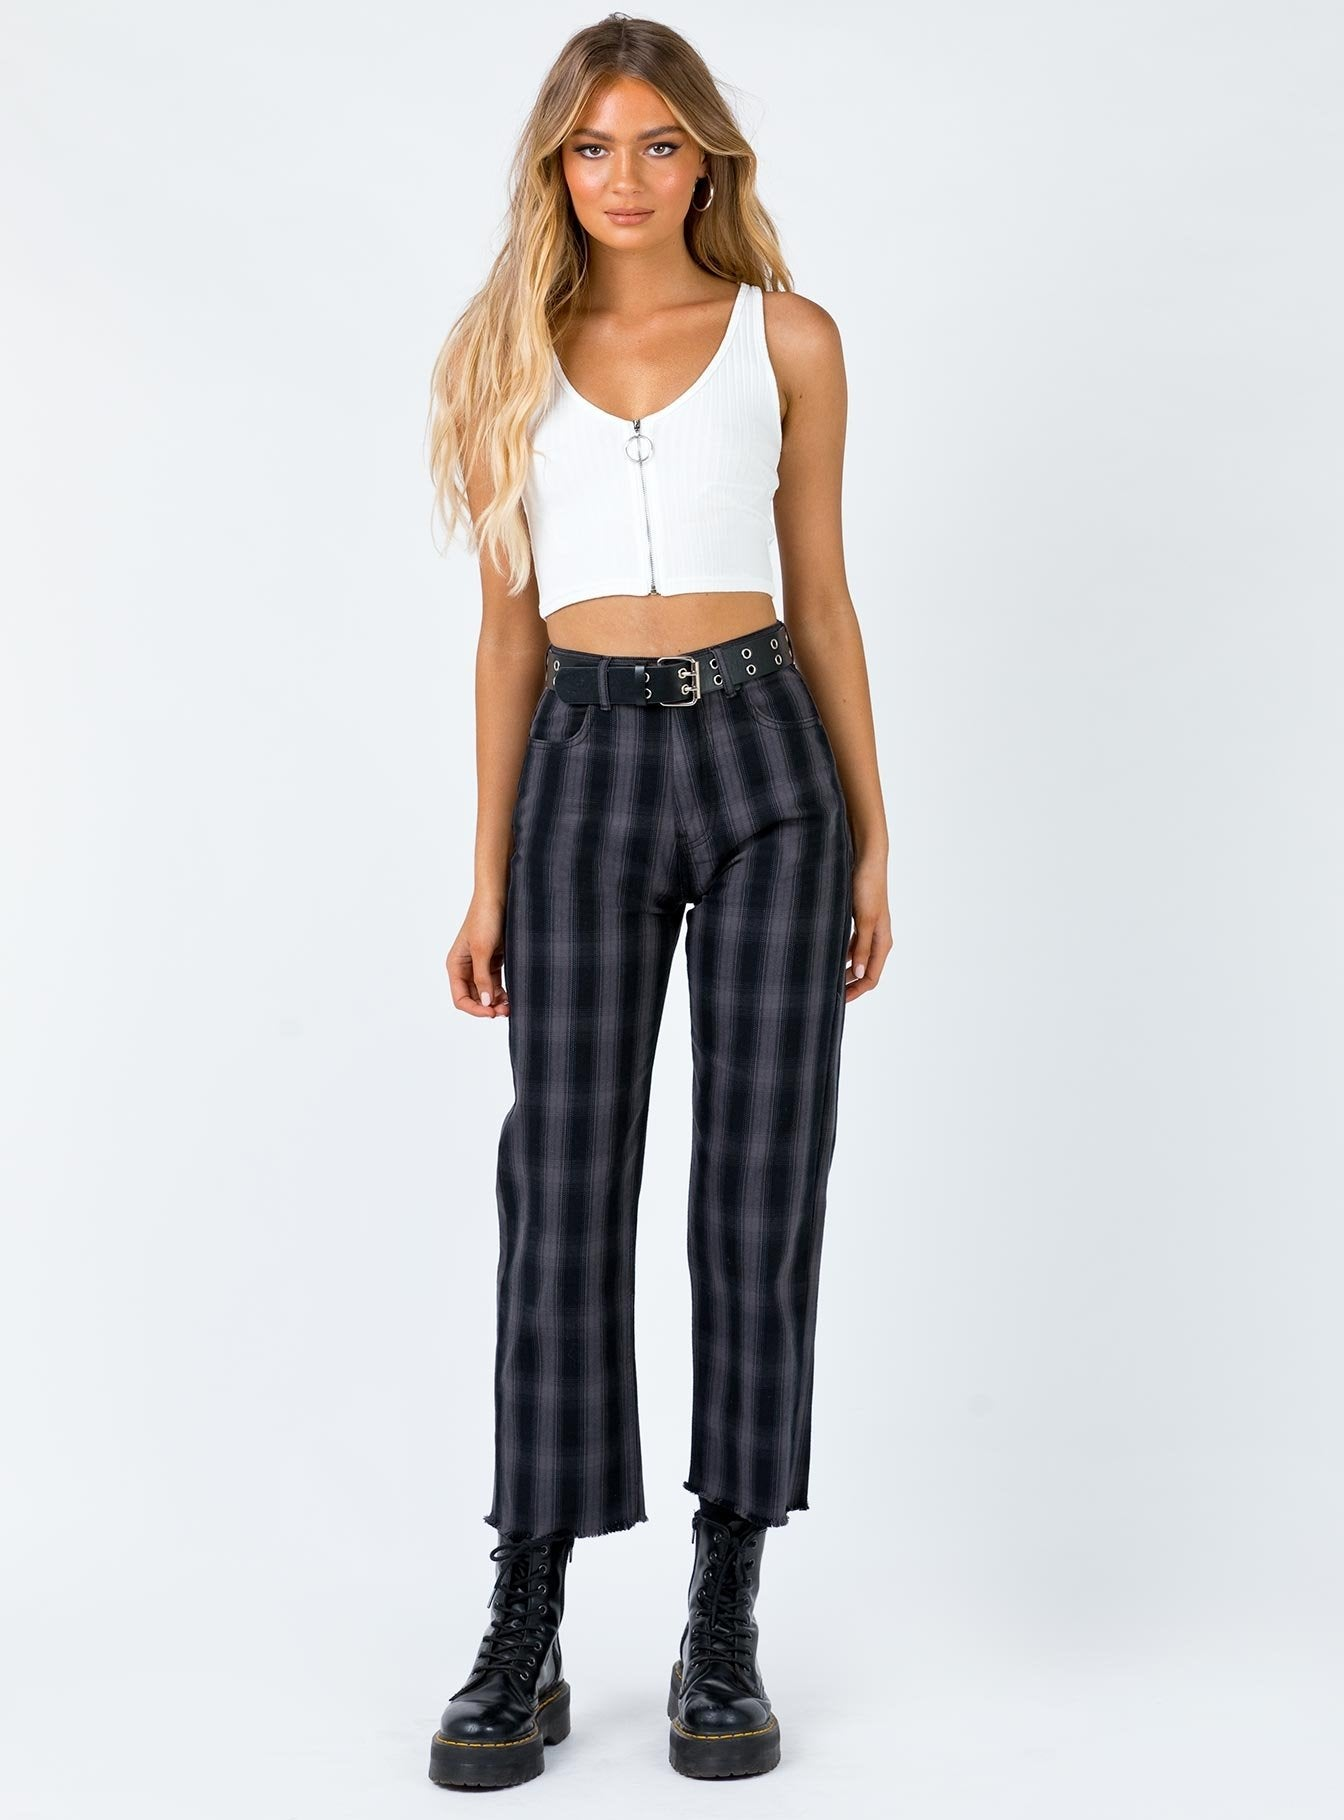 Afends Shelby High Waist Jeans Black Check